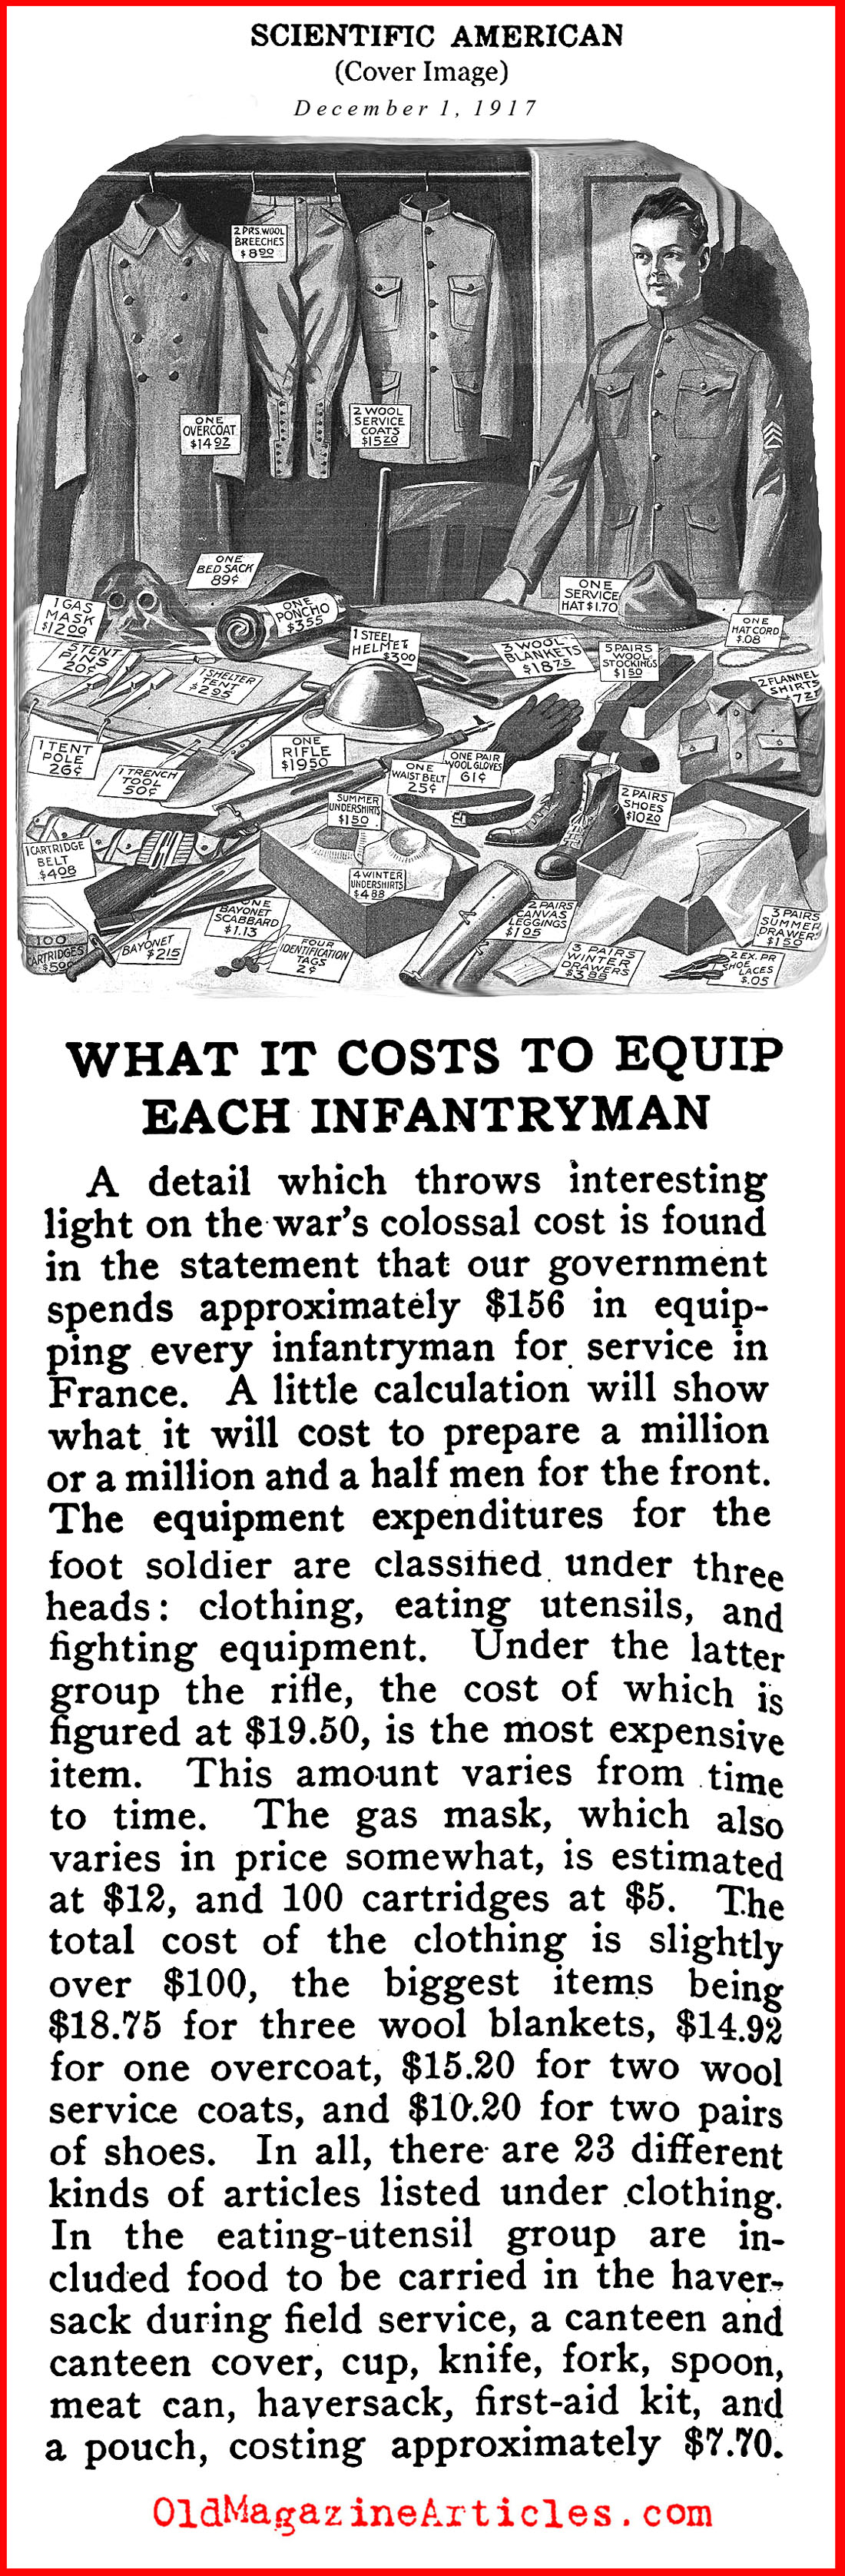 WW1 UNIFORM COST TO THE TAXPAYER,1917 COST FOR A WW1 US ARMY